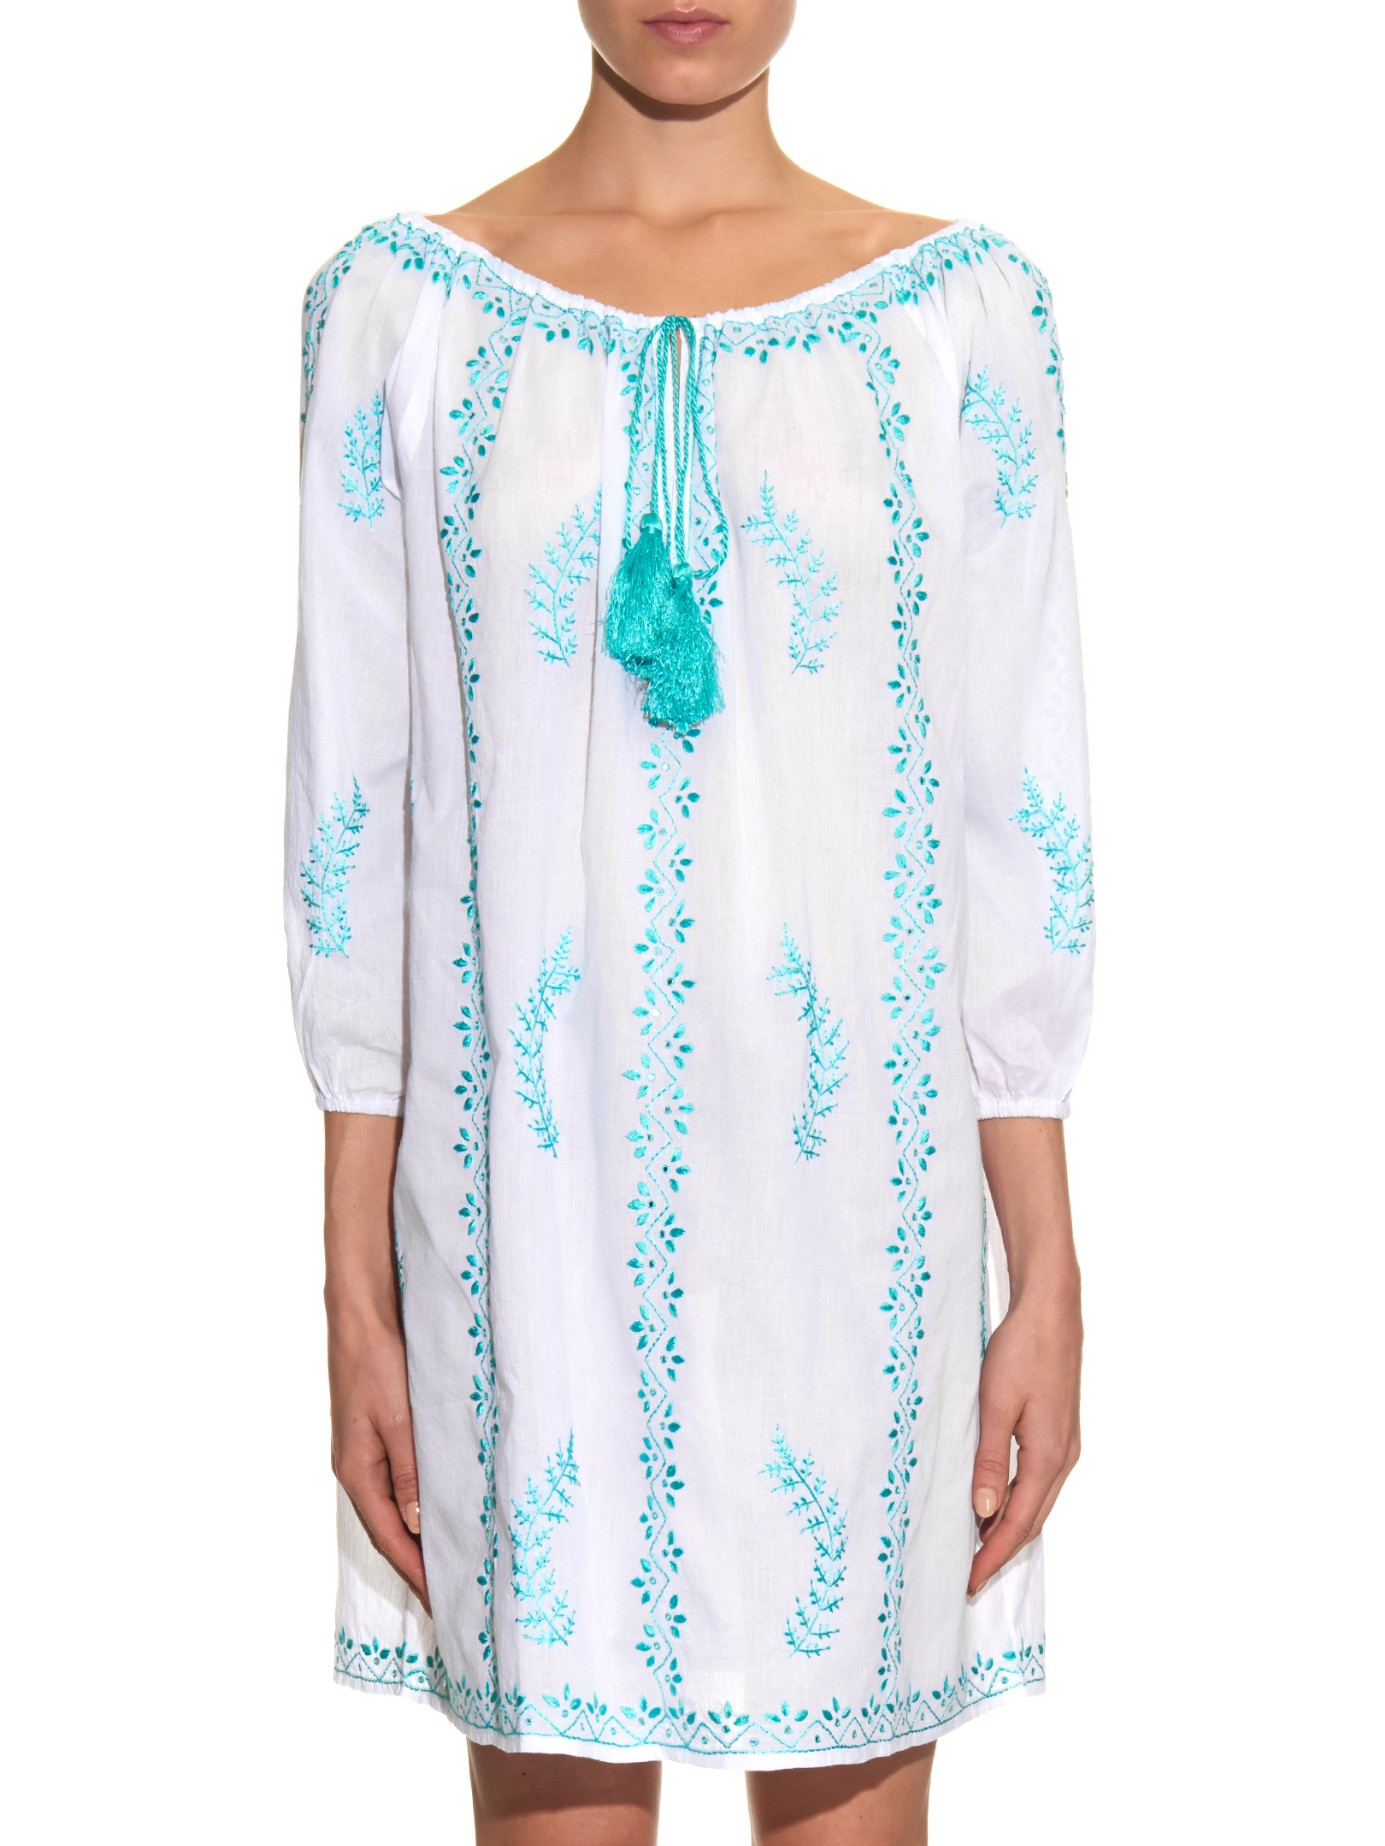 Juliet dunn hand embroidered cotton beach dress in blue lyst